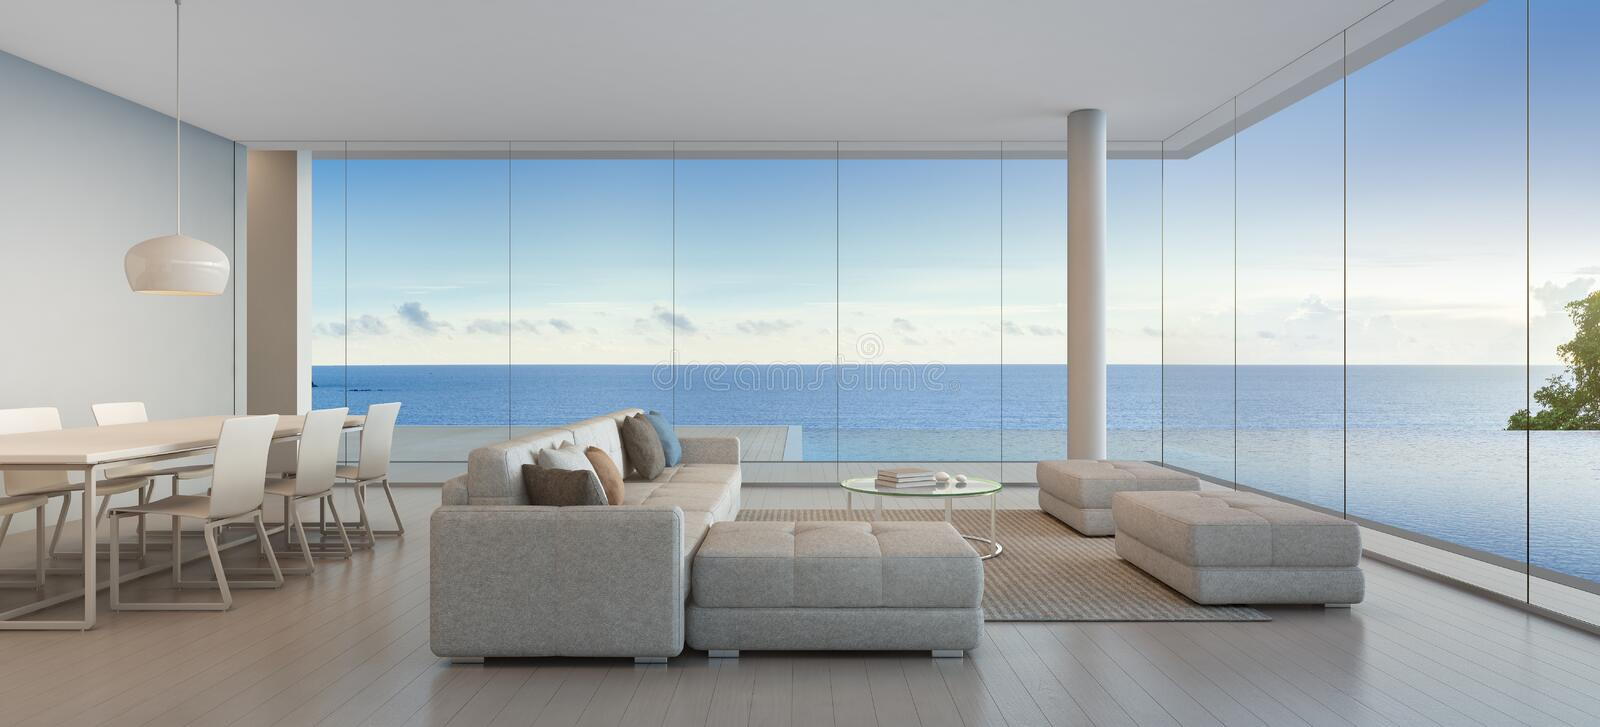 Dining and living room of luxury beach house with sea view for Ville con grandi vetrate